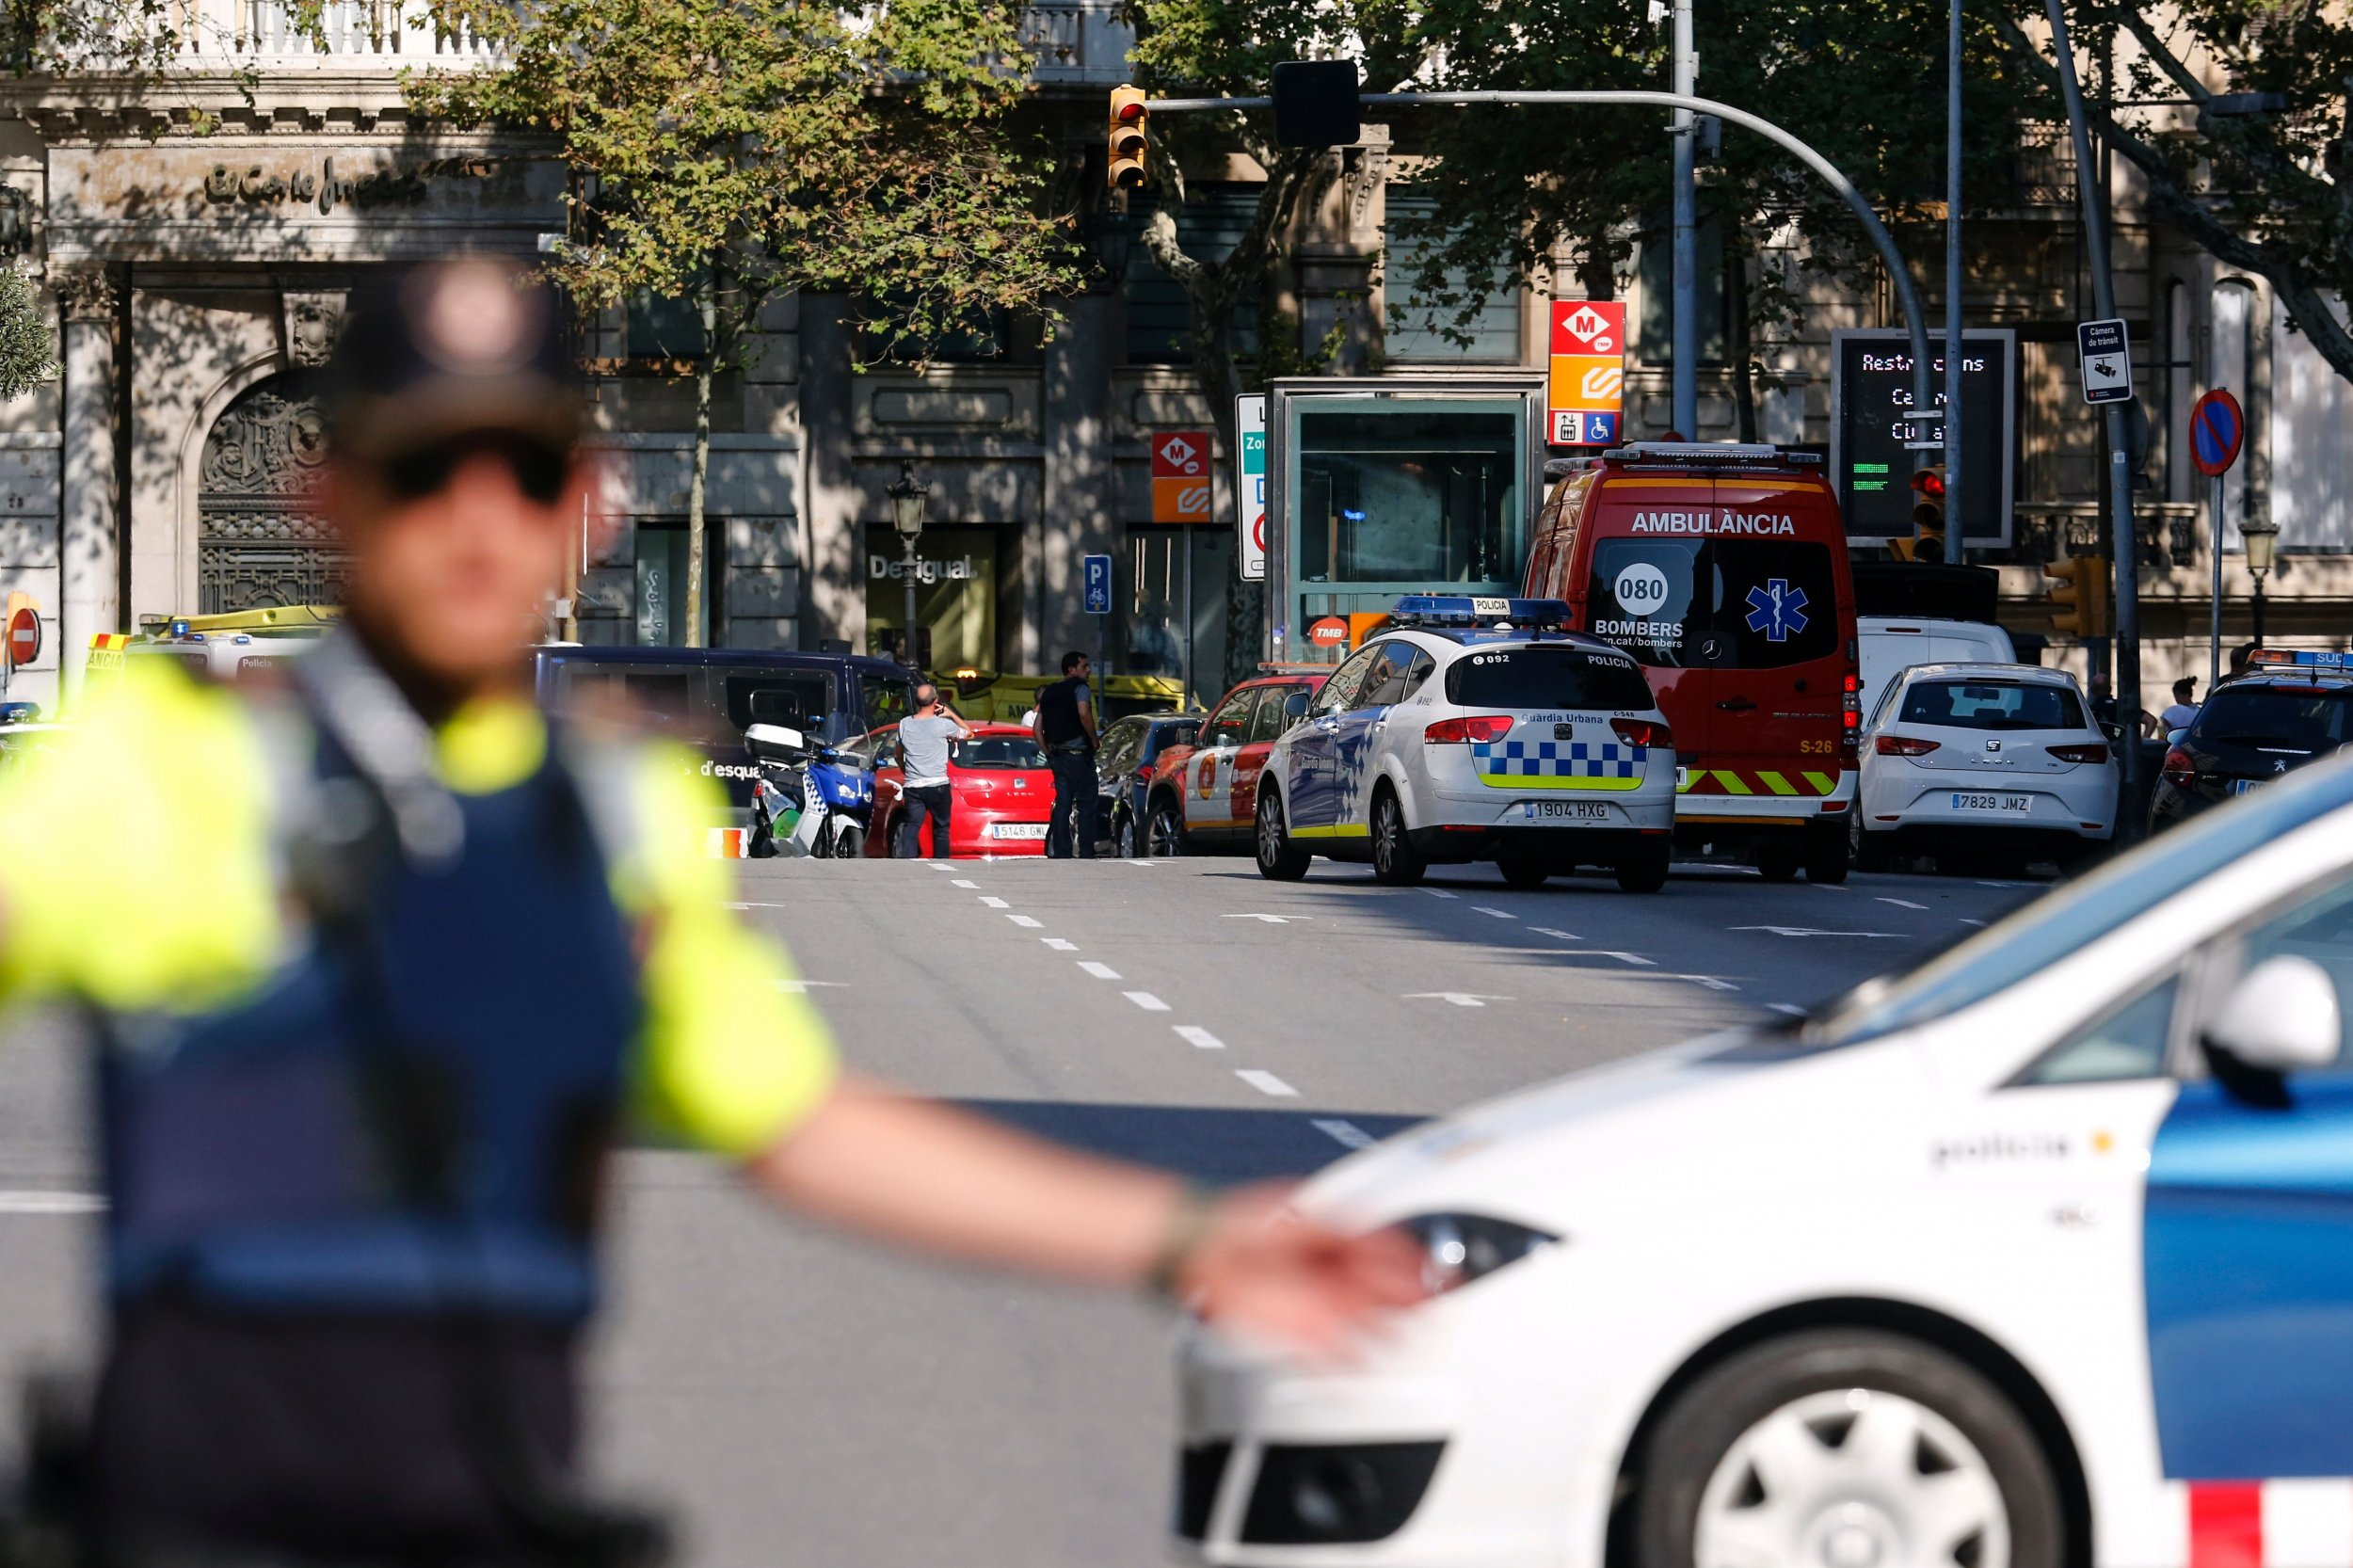 Surviving Barcelona and Cambrils attacks suspects appear at Madrid High Court